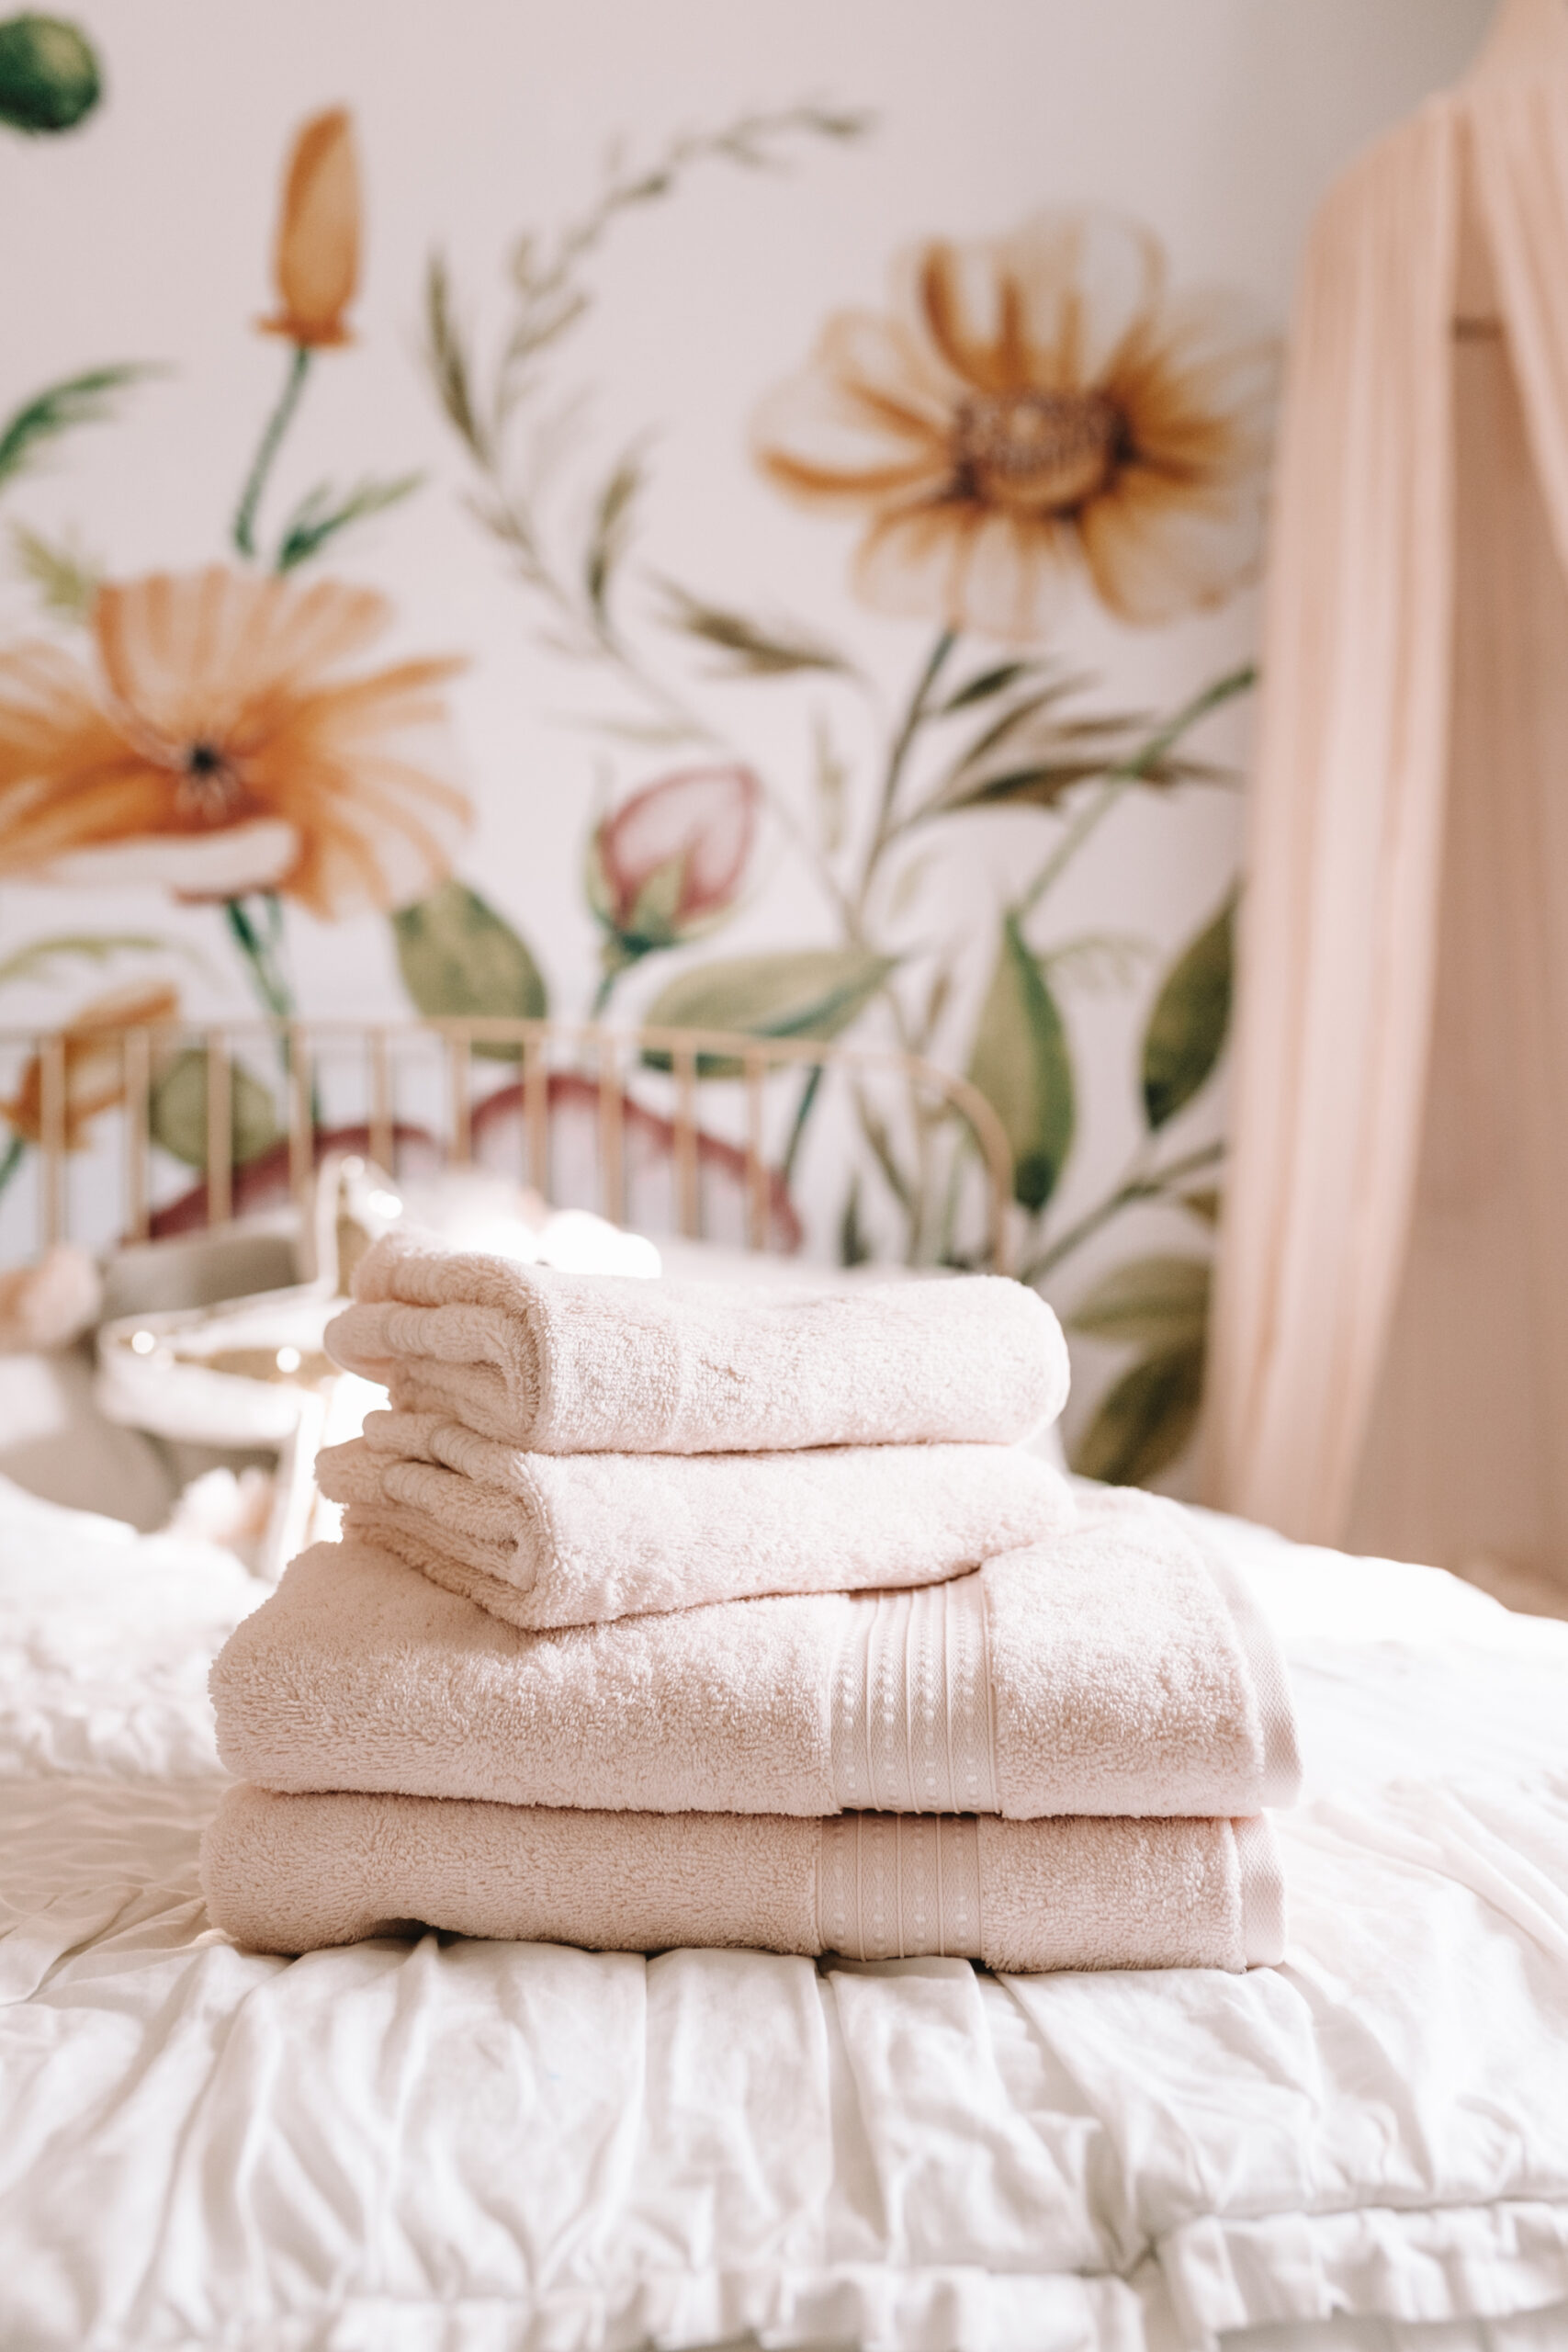 getting holiday ready with fresh guest towels. #holidaygiftguide #freshlinens #girlsroom